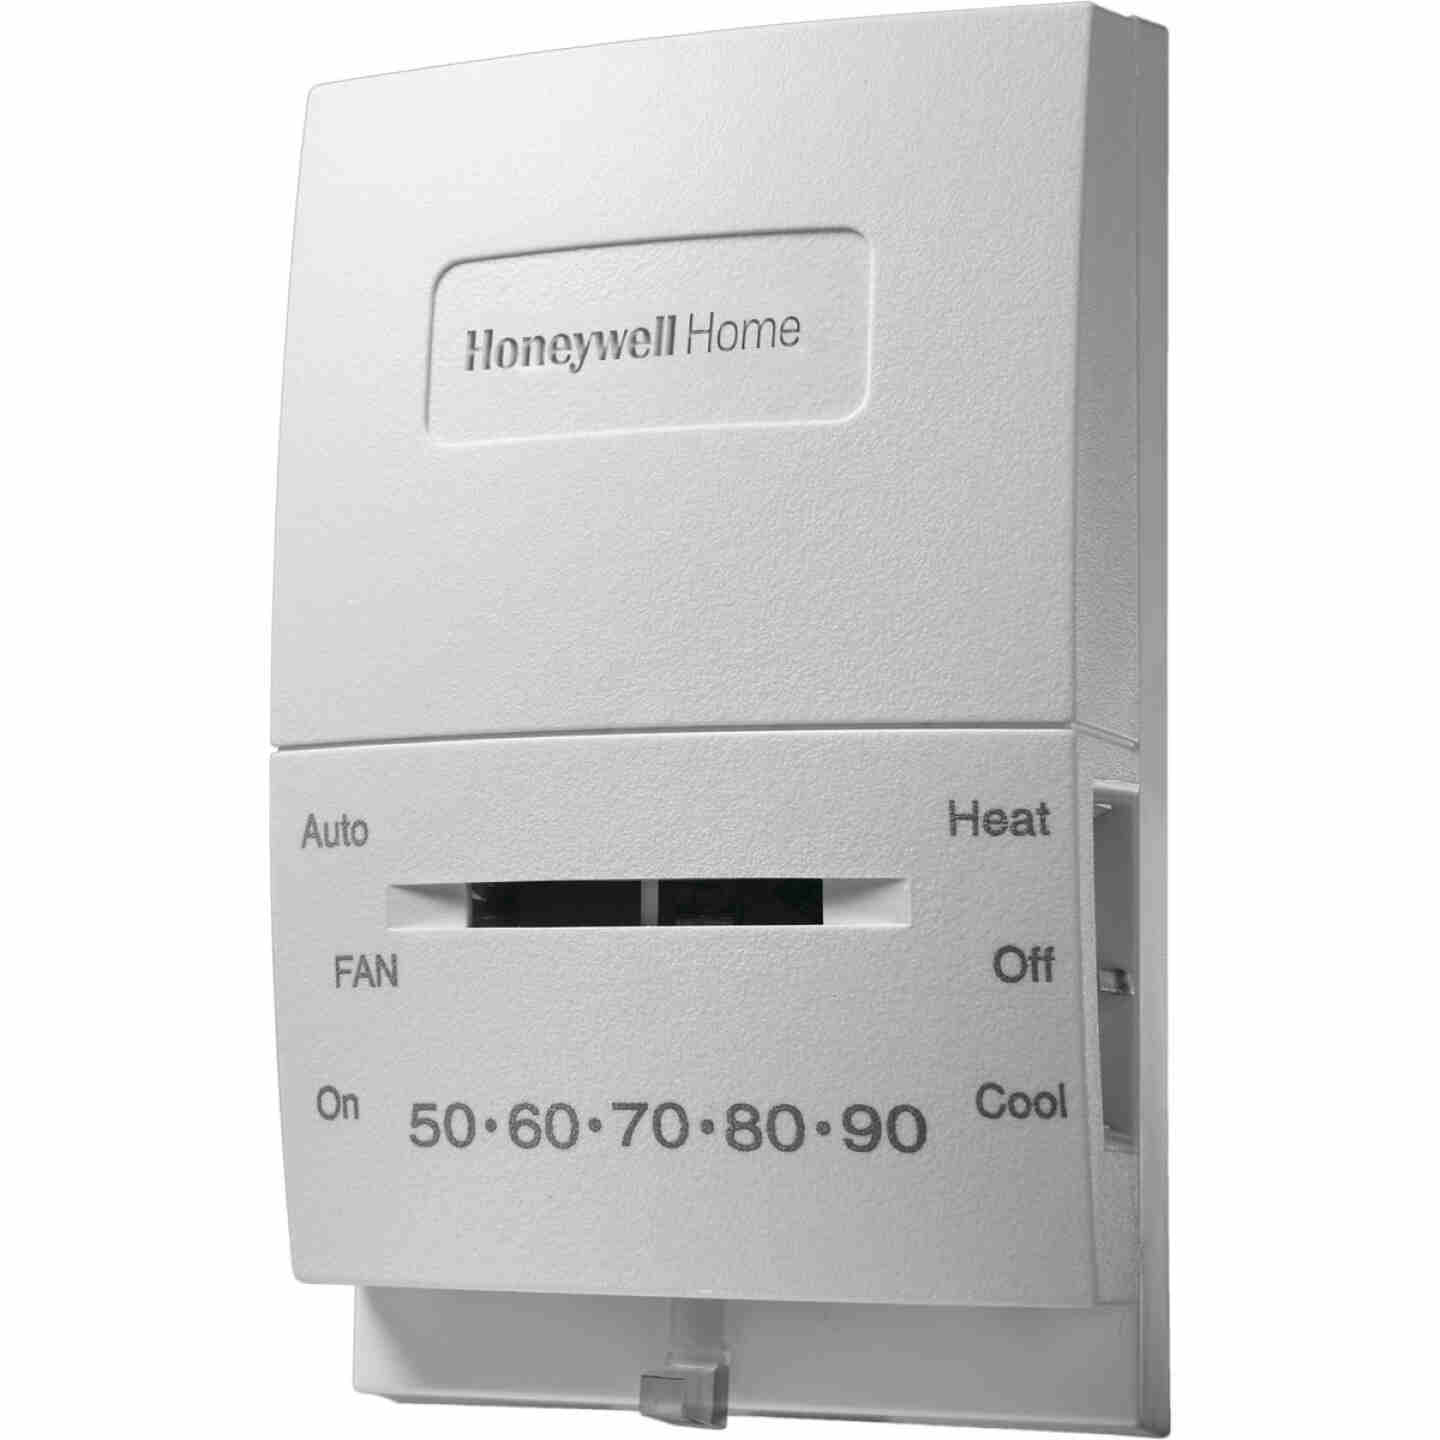 Honeywell Home 55 F to 85 F Off-White Mechanical Thermostat Image 2